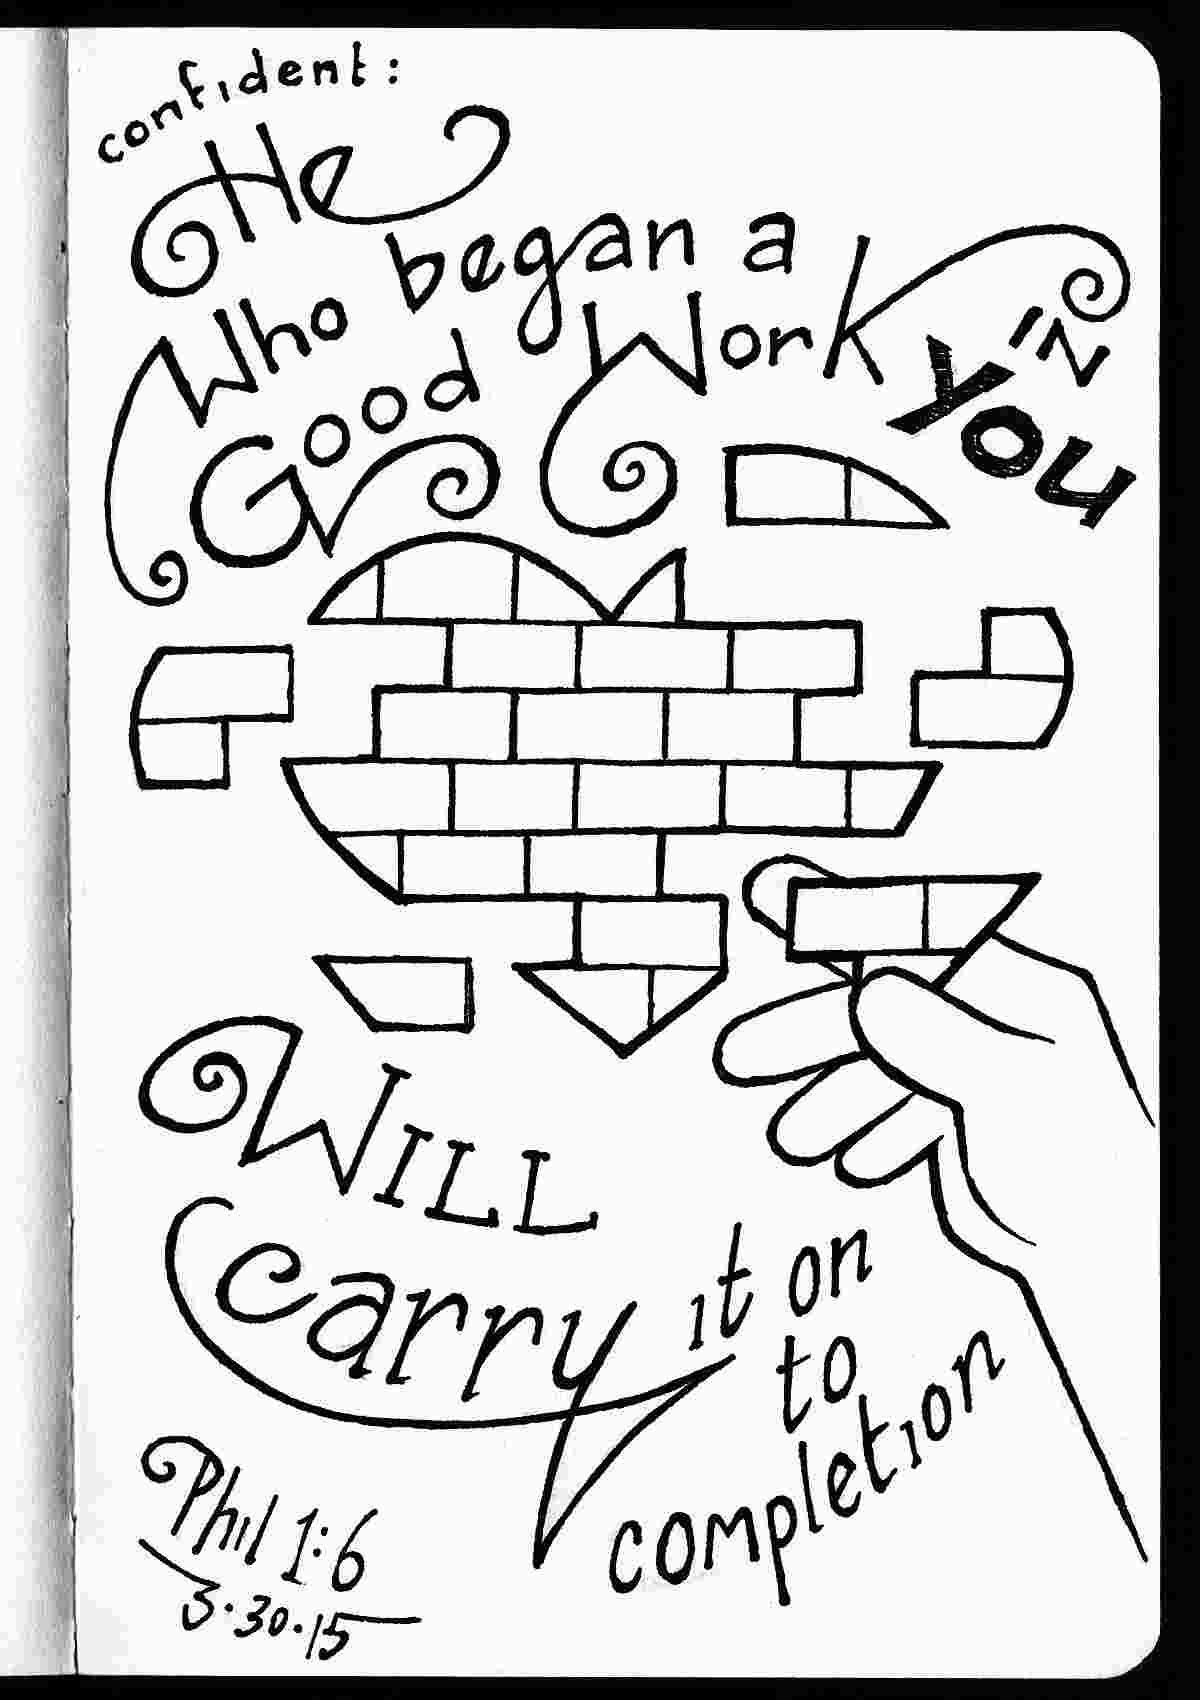 philippians 1 6 coloring sheet coloring pages for kids by mr adron free philippians 16 philippians sheet 6 1 coloring